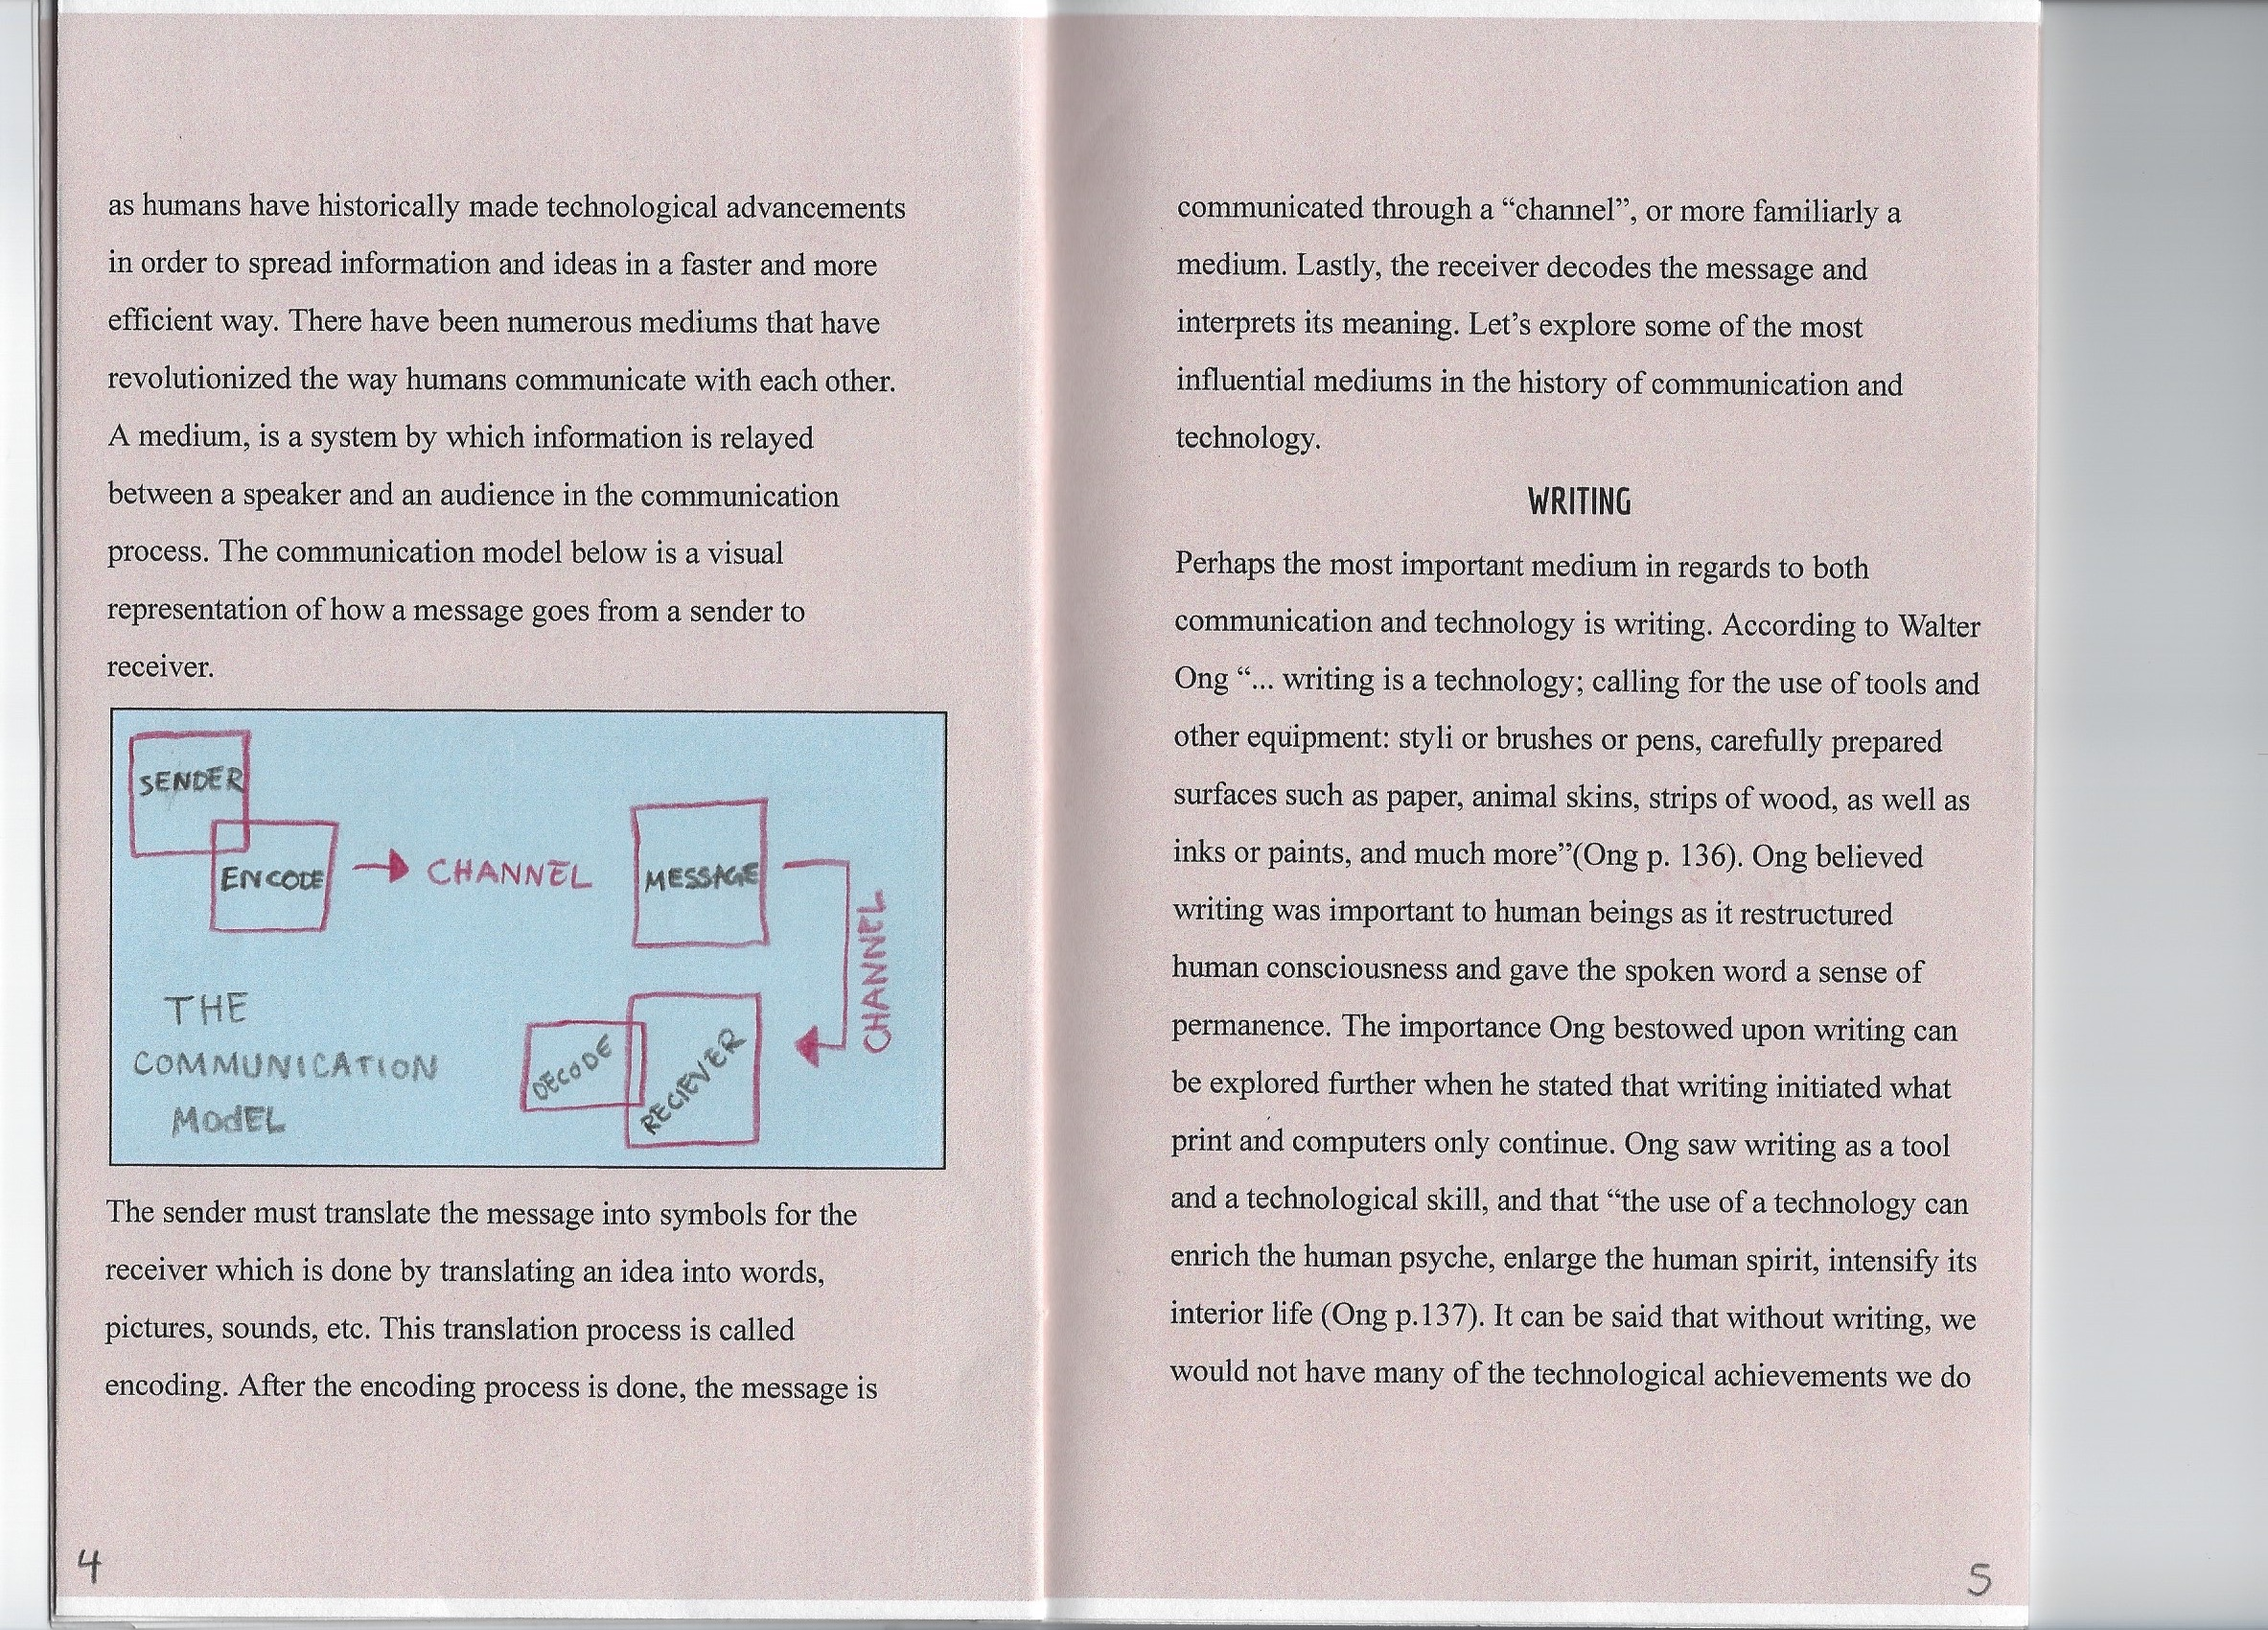 Page 4: This page continues the concept of mediums and includes a diagram of the communication model. Page 5: A page introducing the topic of writing.